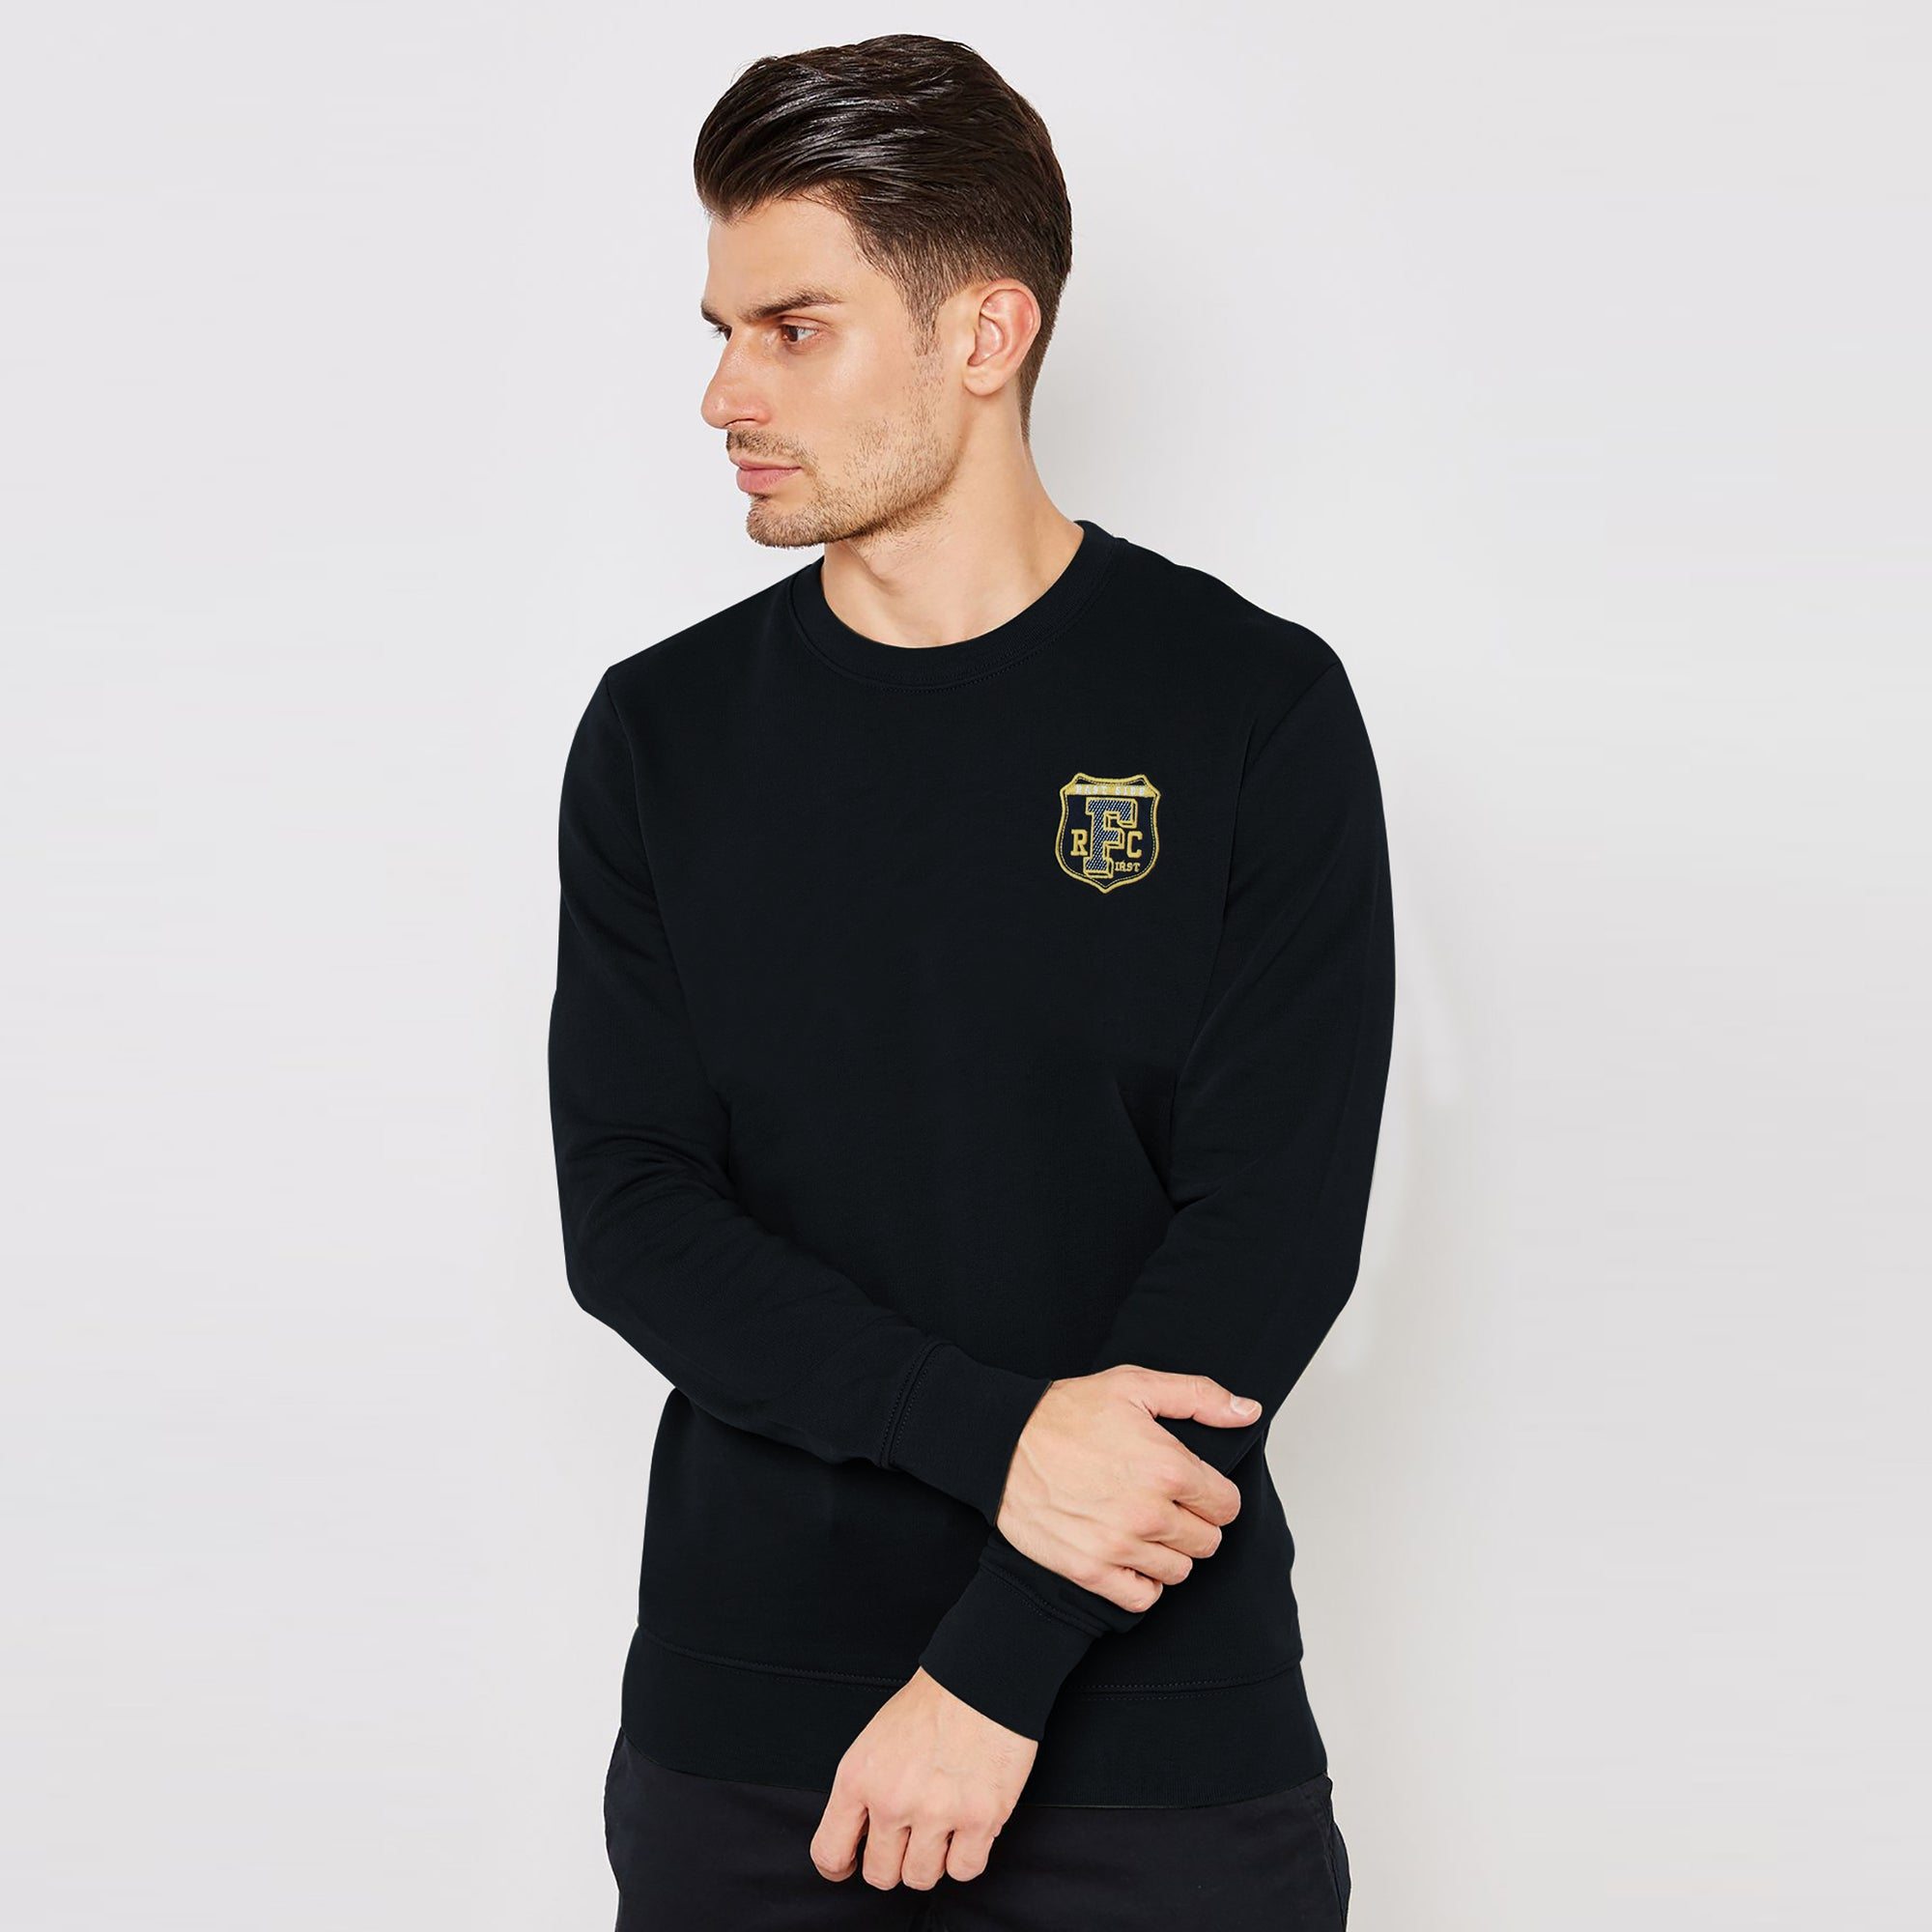 brandsego - F&F Fleece Crew Neck Sweatshirt For Men-Black-BE6684